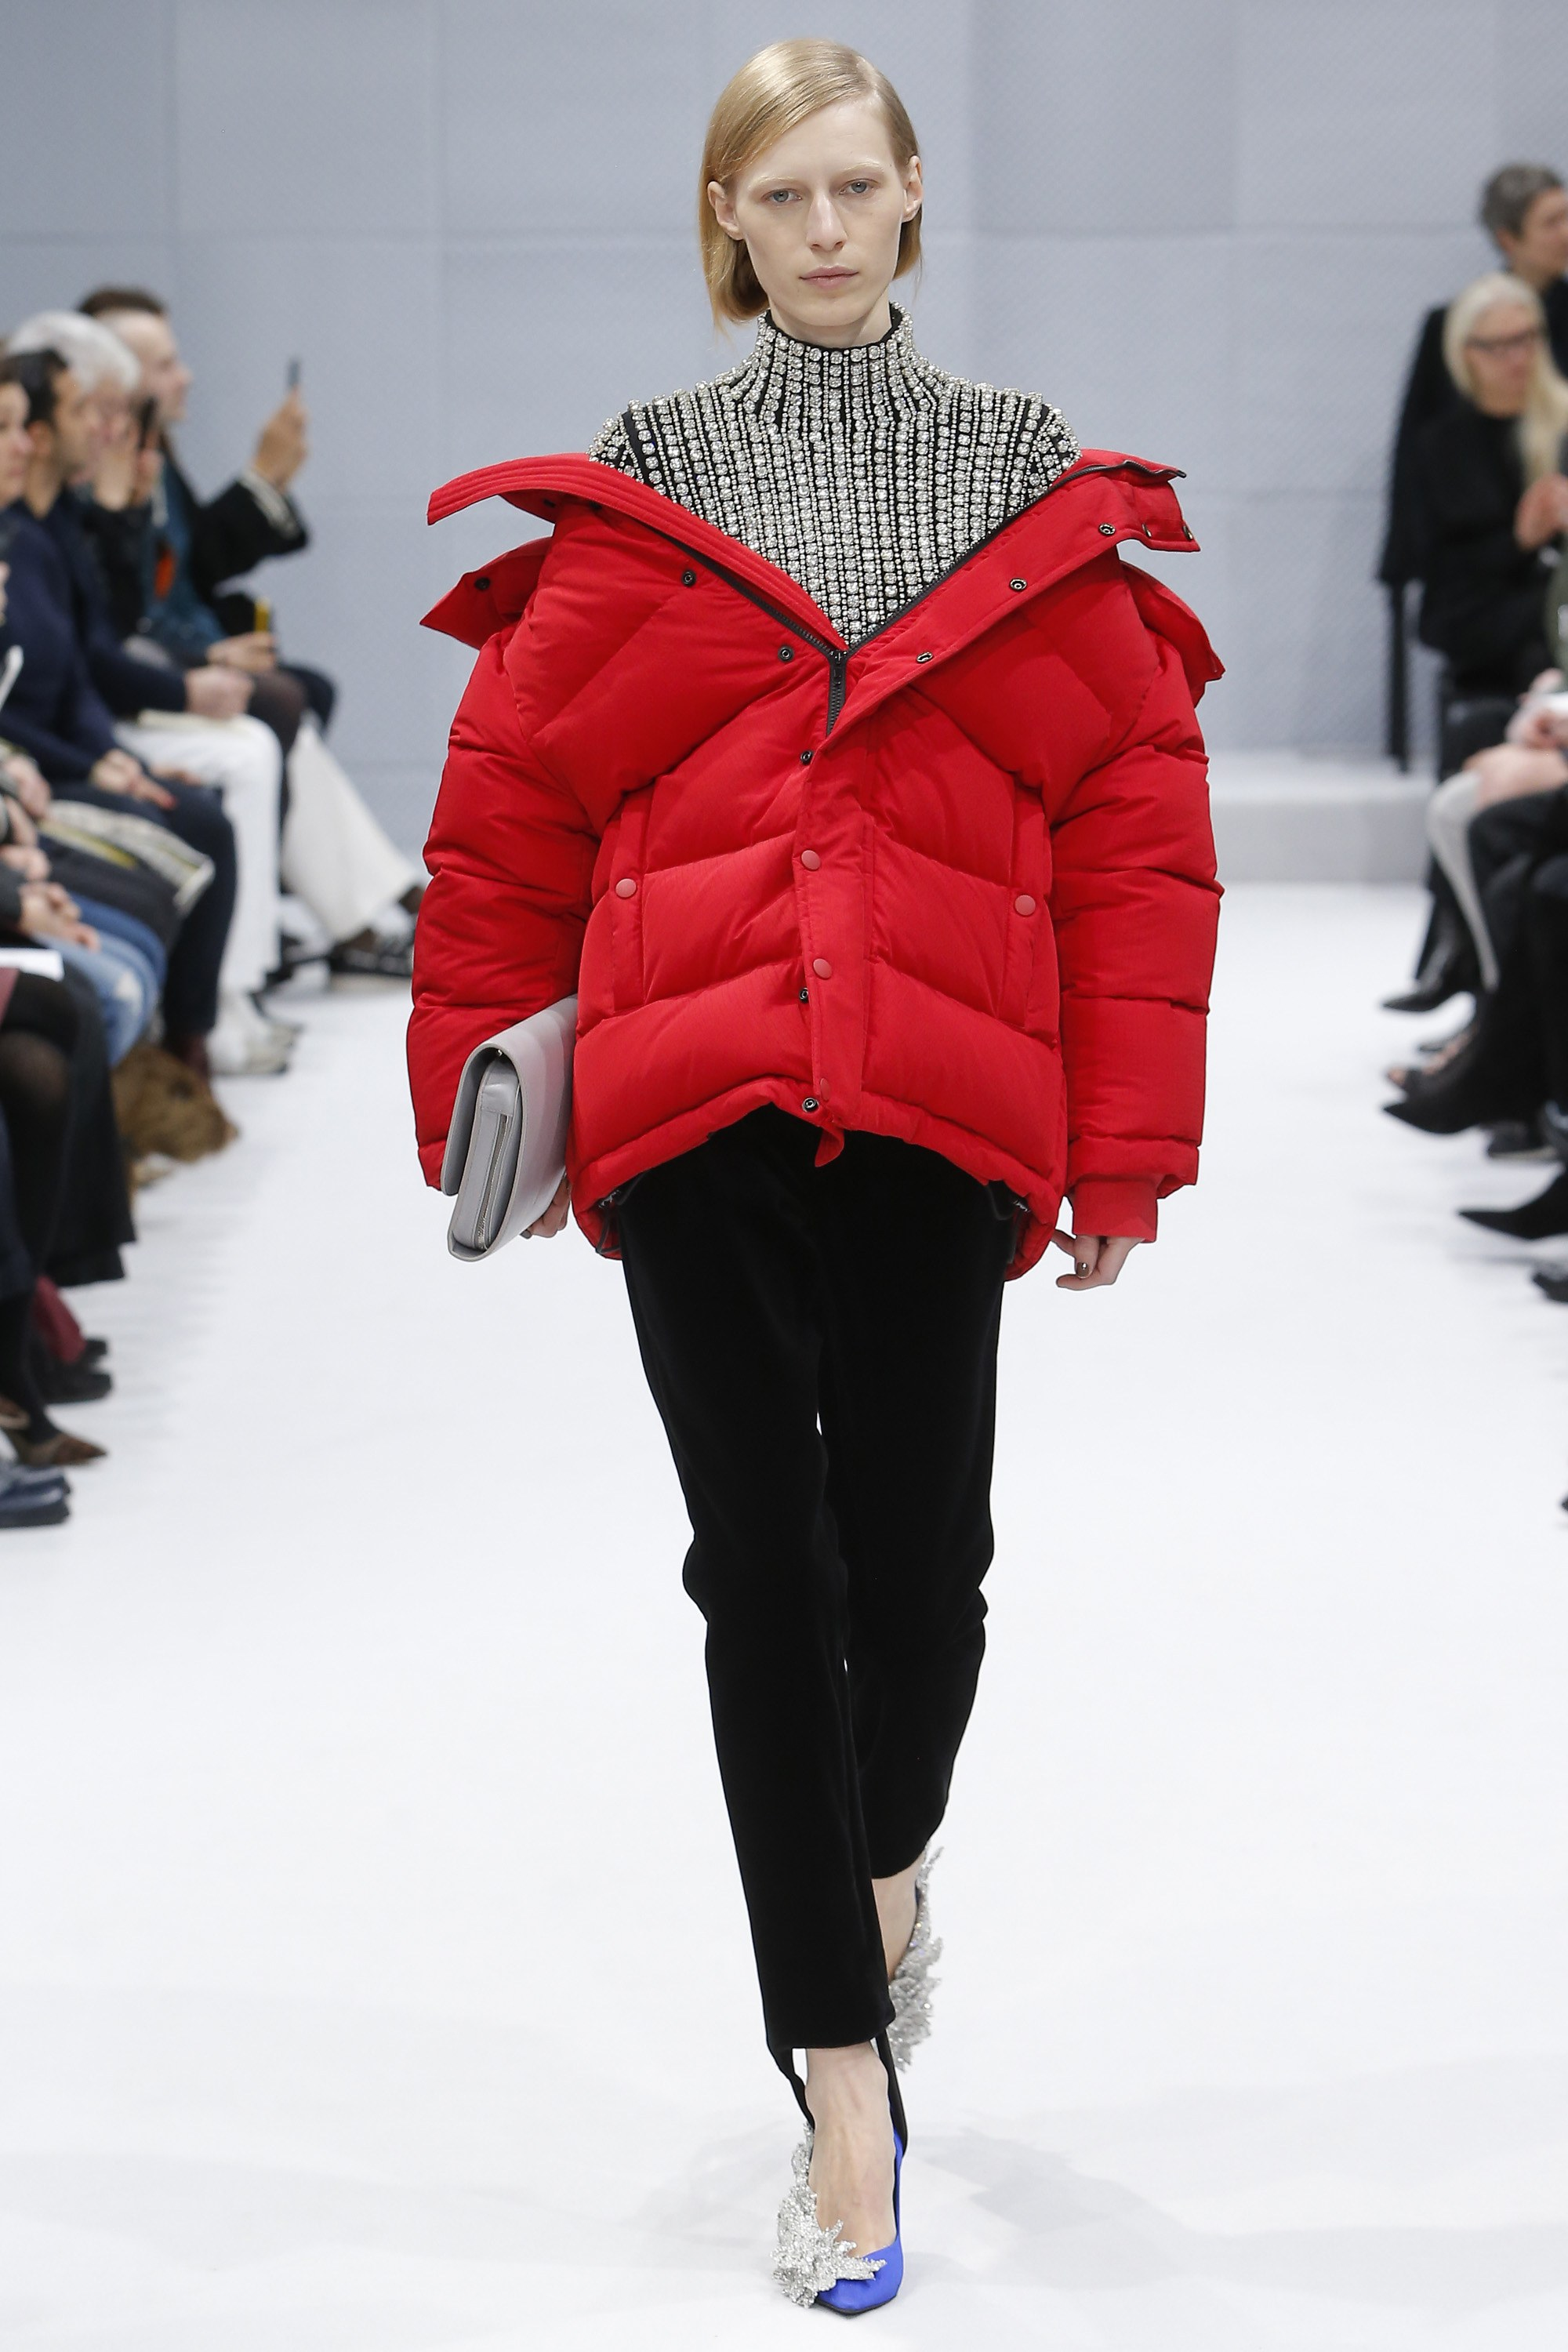 Fashion is for people who don't have to use their arms, apparently.